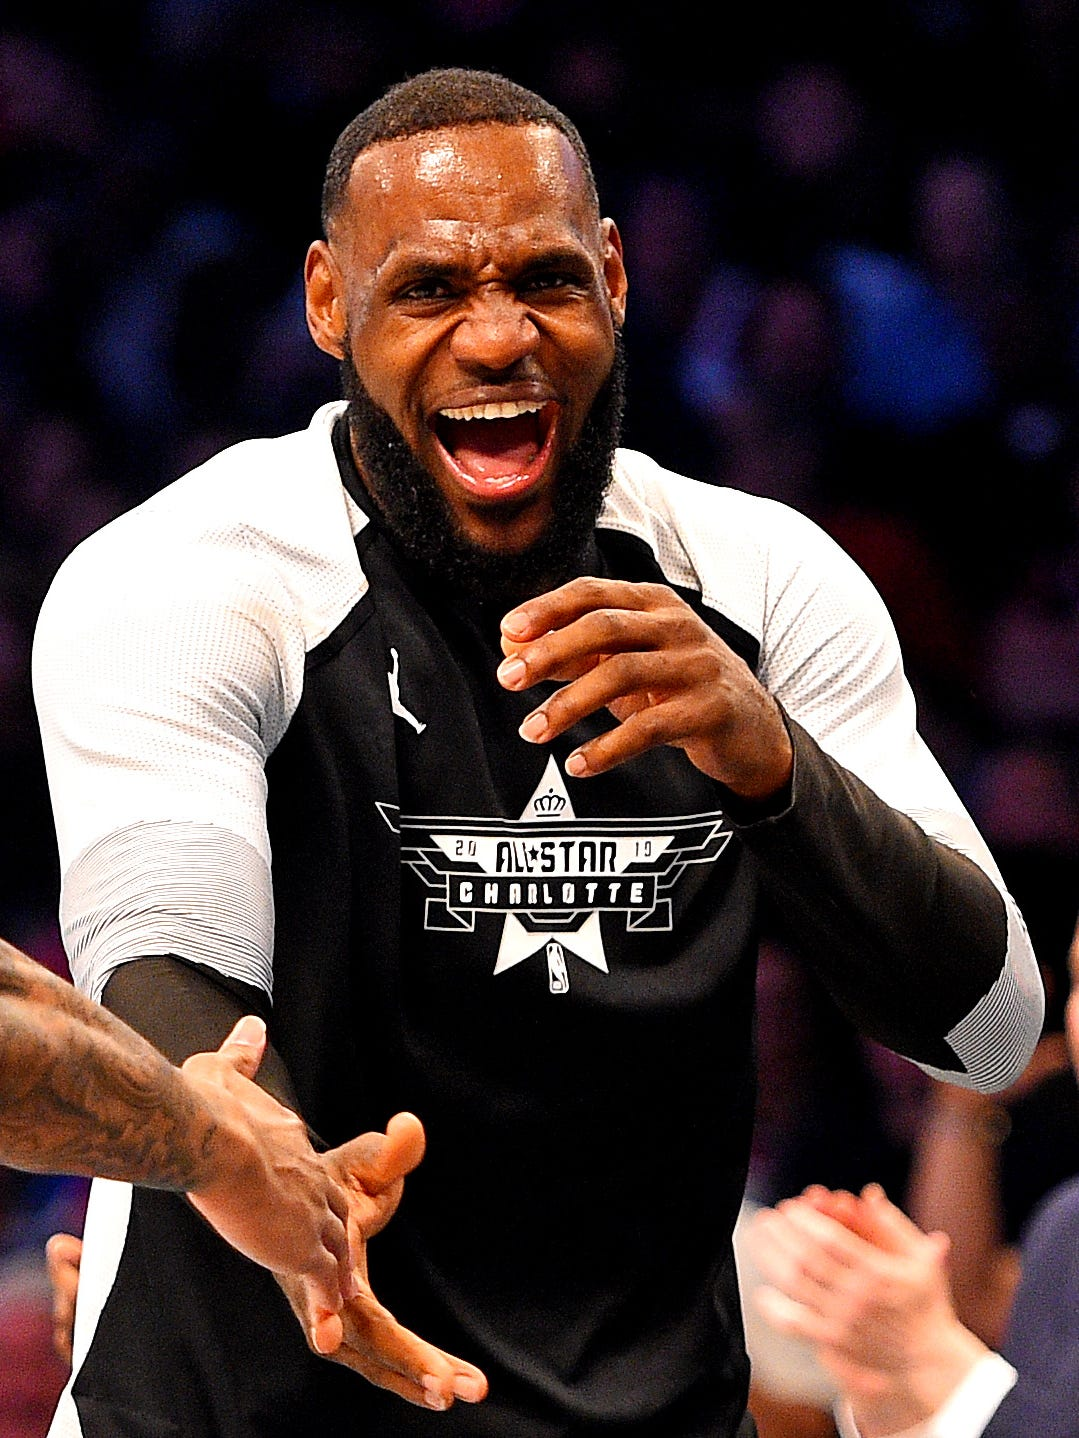 LeBron James soaked up the All-Star Game atmosphere.